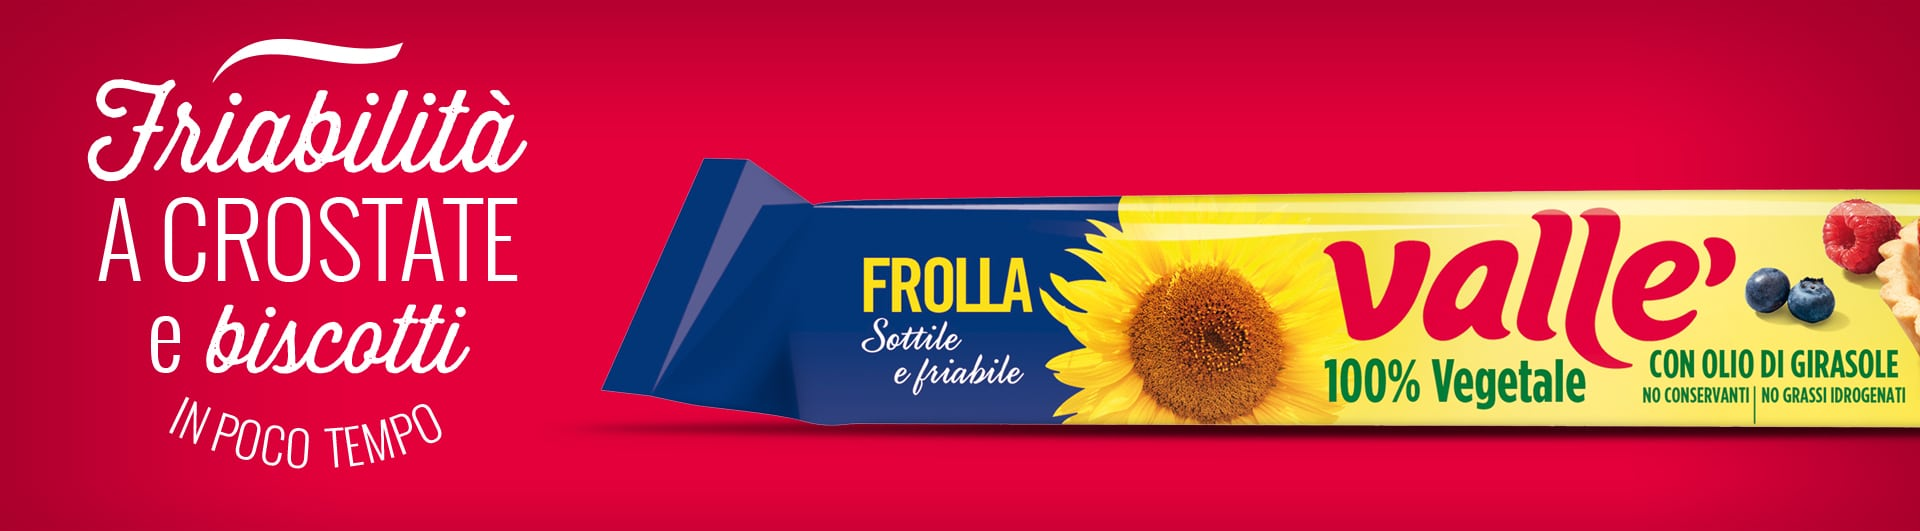 Frolla